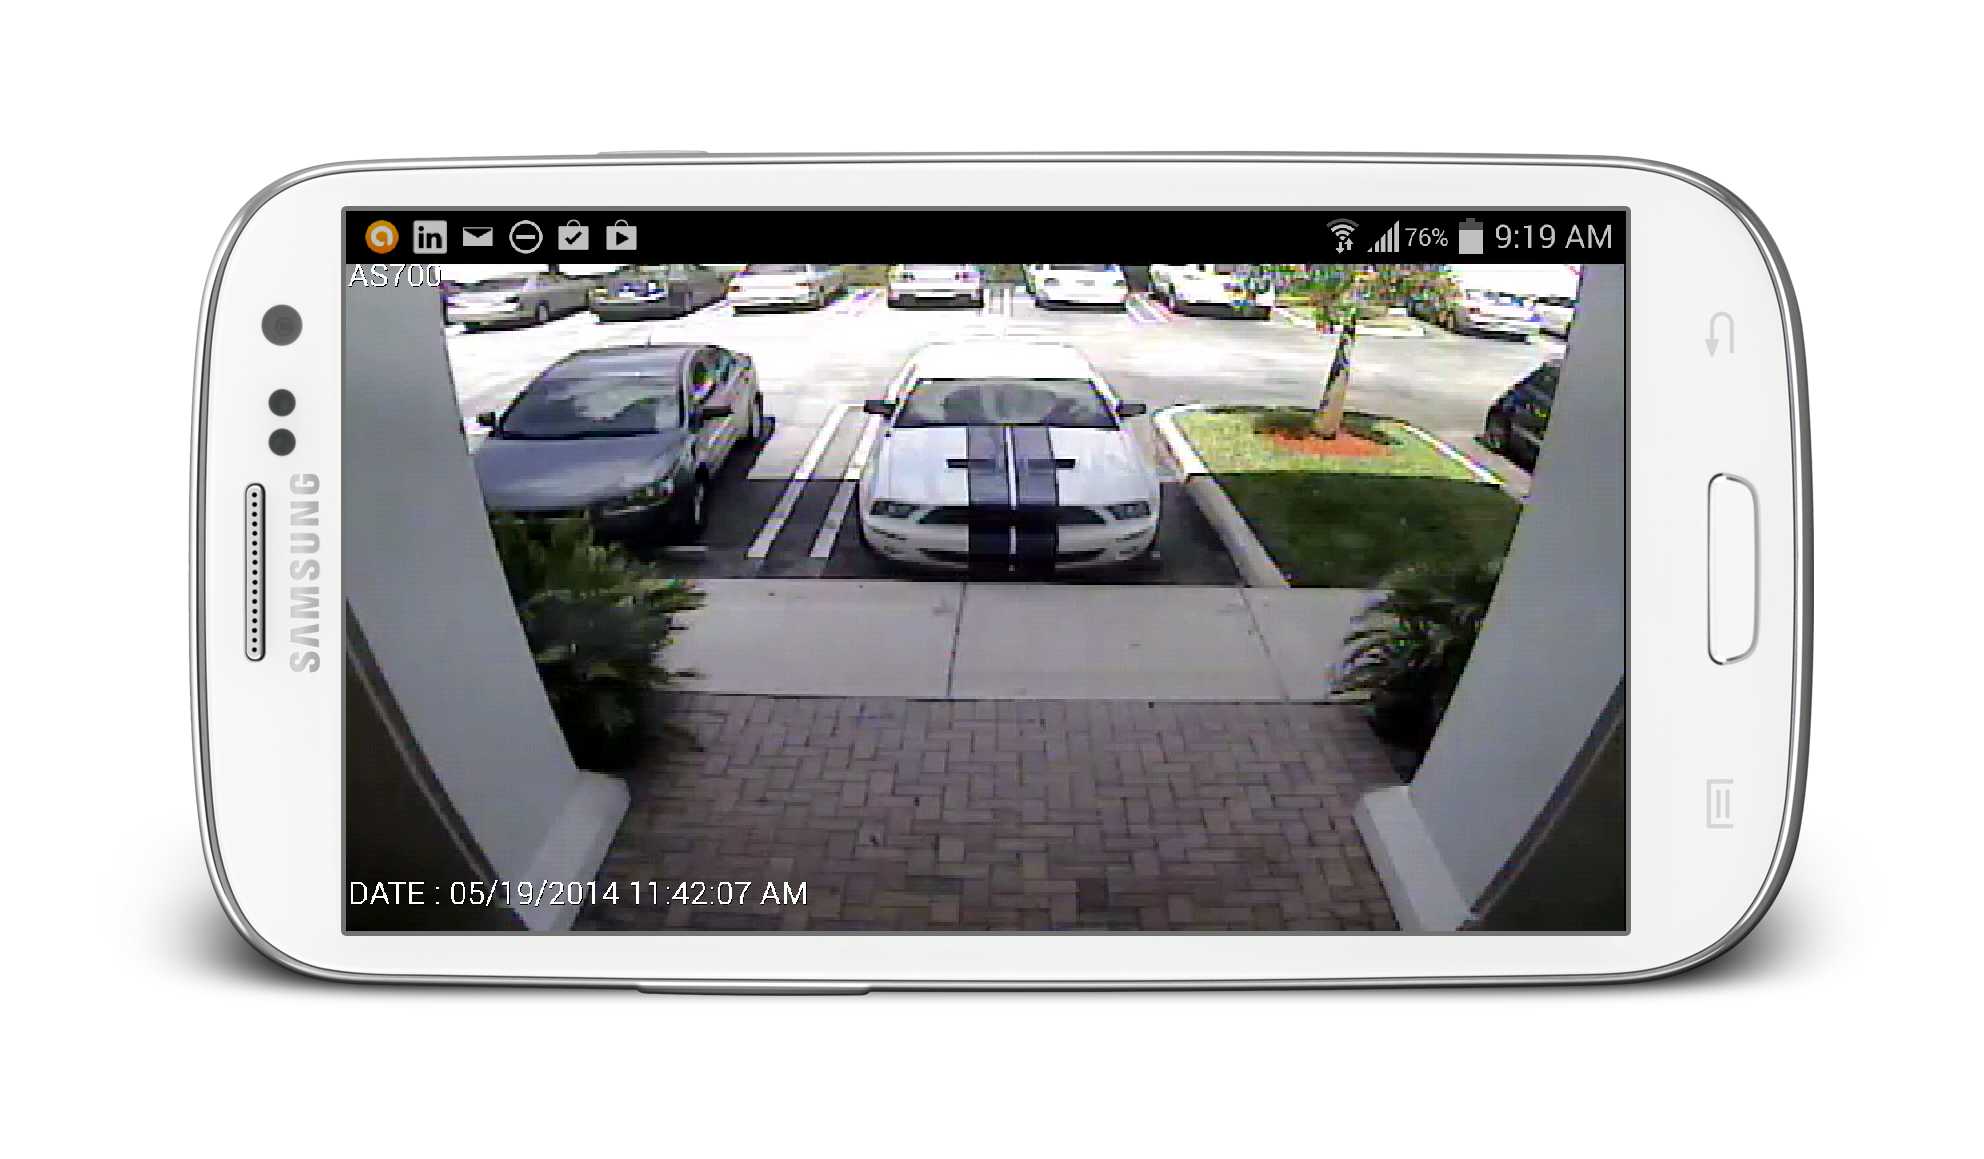 Portable png picture viewer. View security cameras from